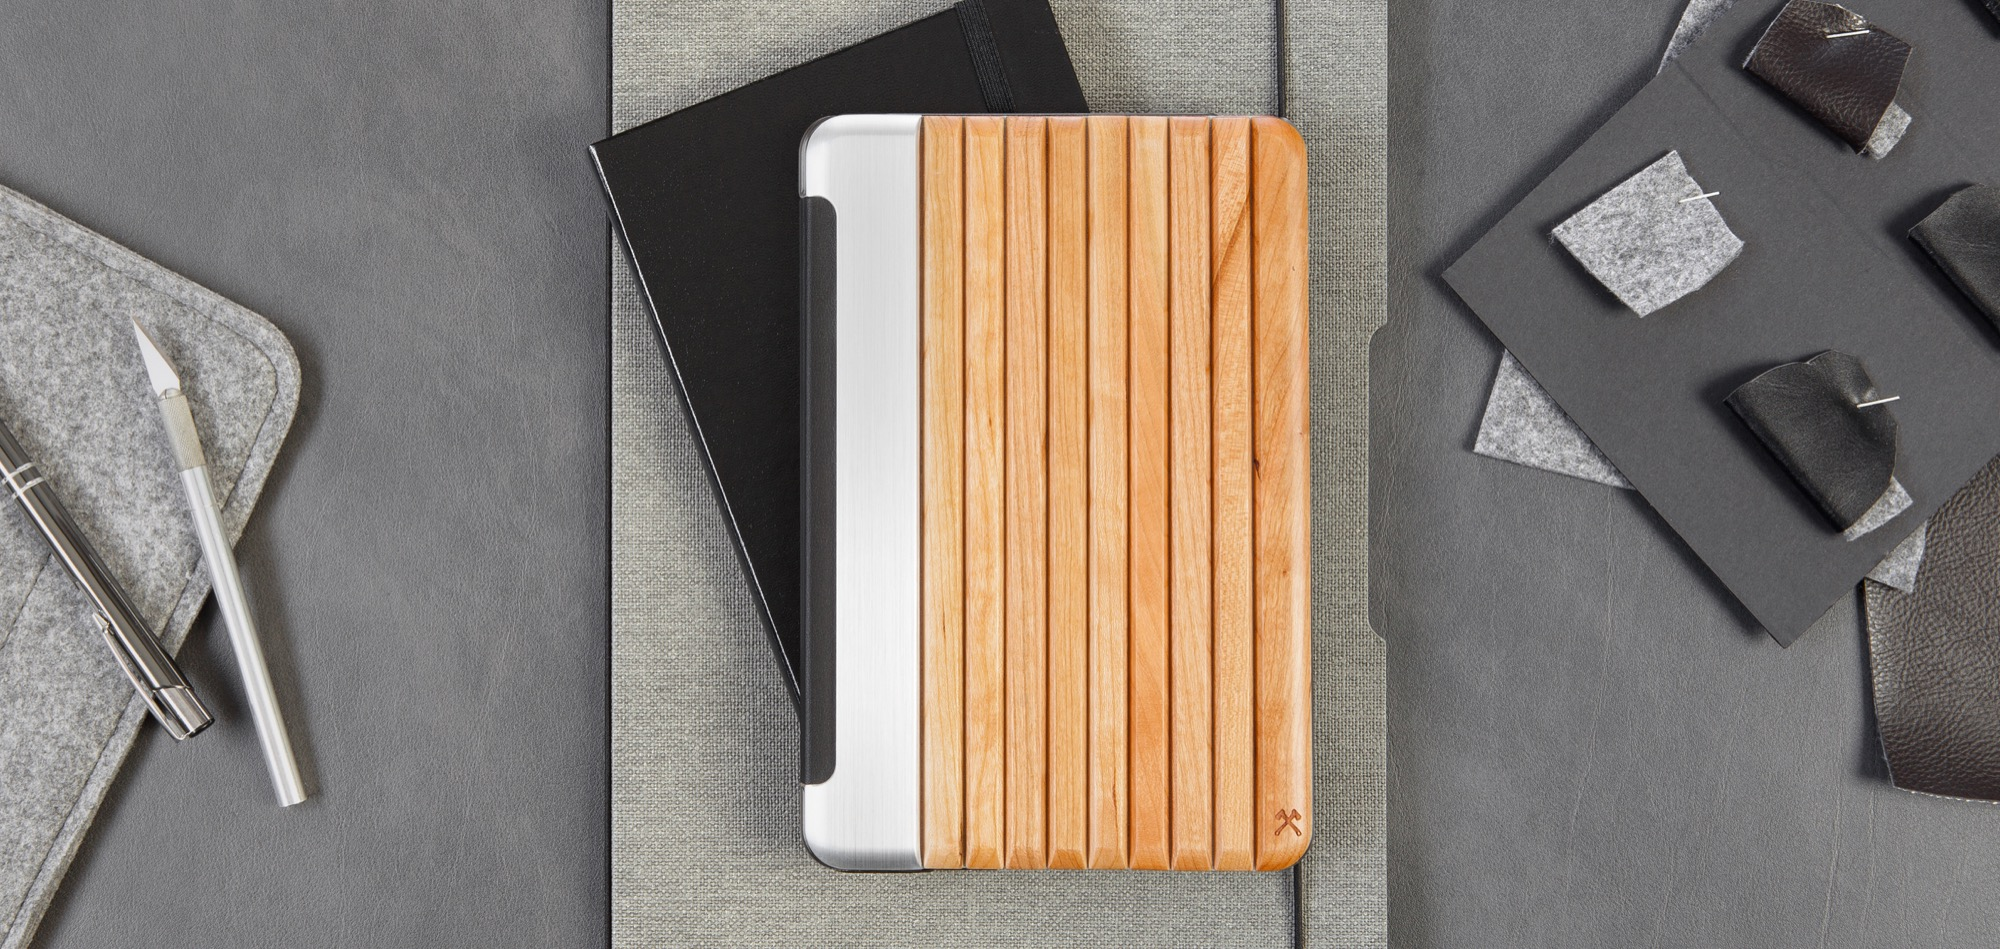 woodcessories-holz-holzcase-holzhuelle-iphone-5-se-6-flipcover-echtholz-wooden-case-handyhuelle-ipad-iphone 7-apple-macbook-imac-skin-sticker-holzskinFolie12